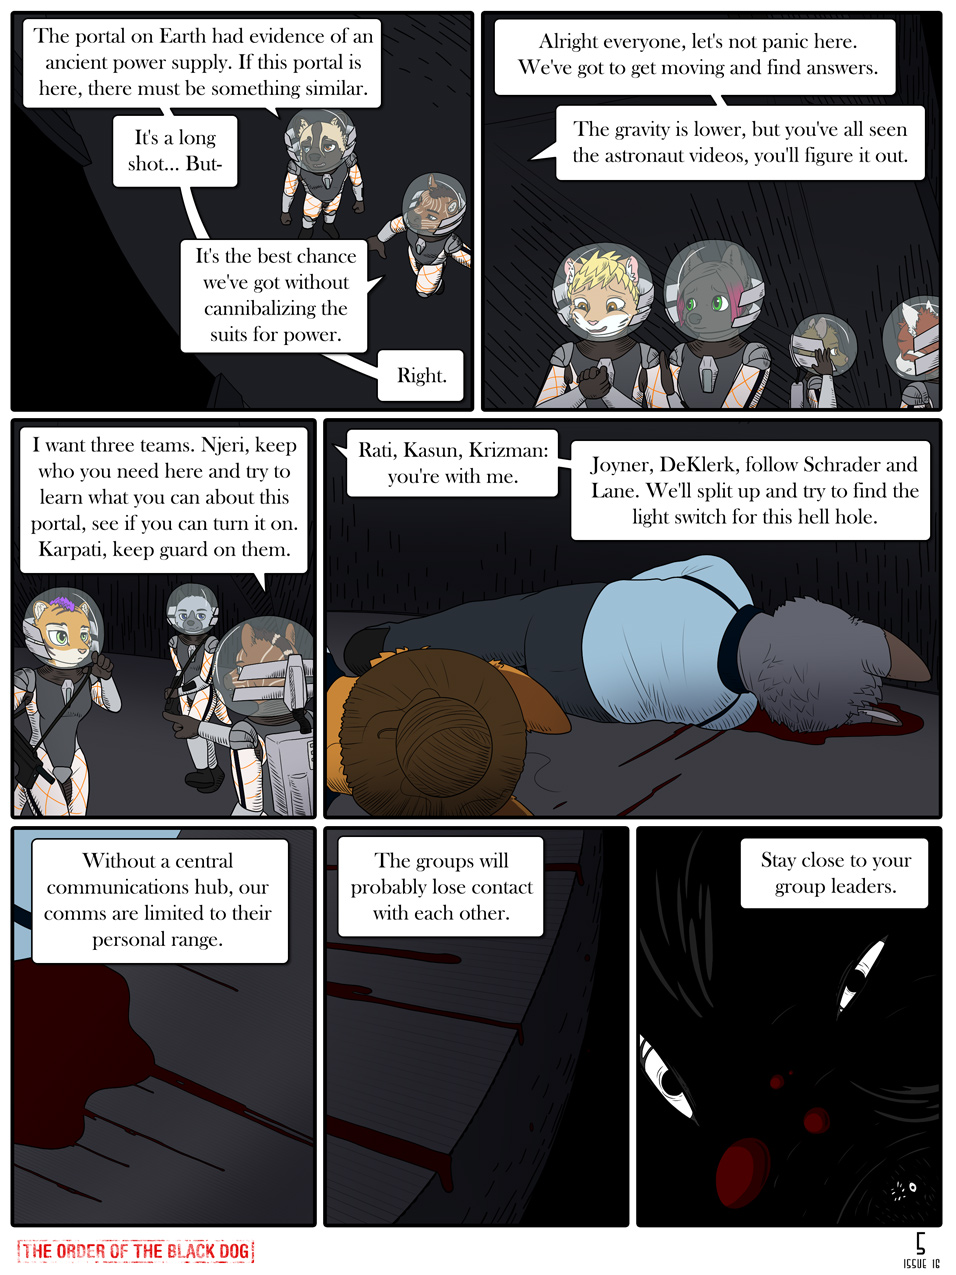 Issue 16, Page 5